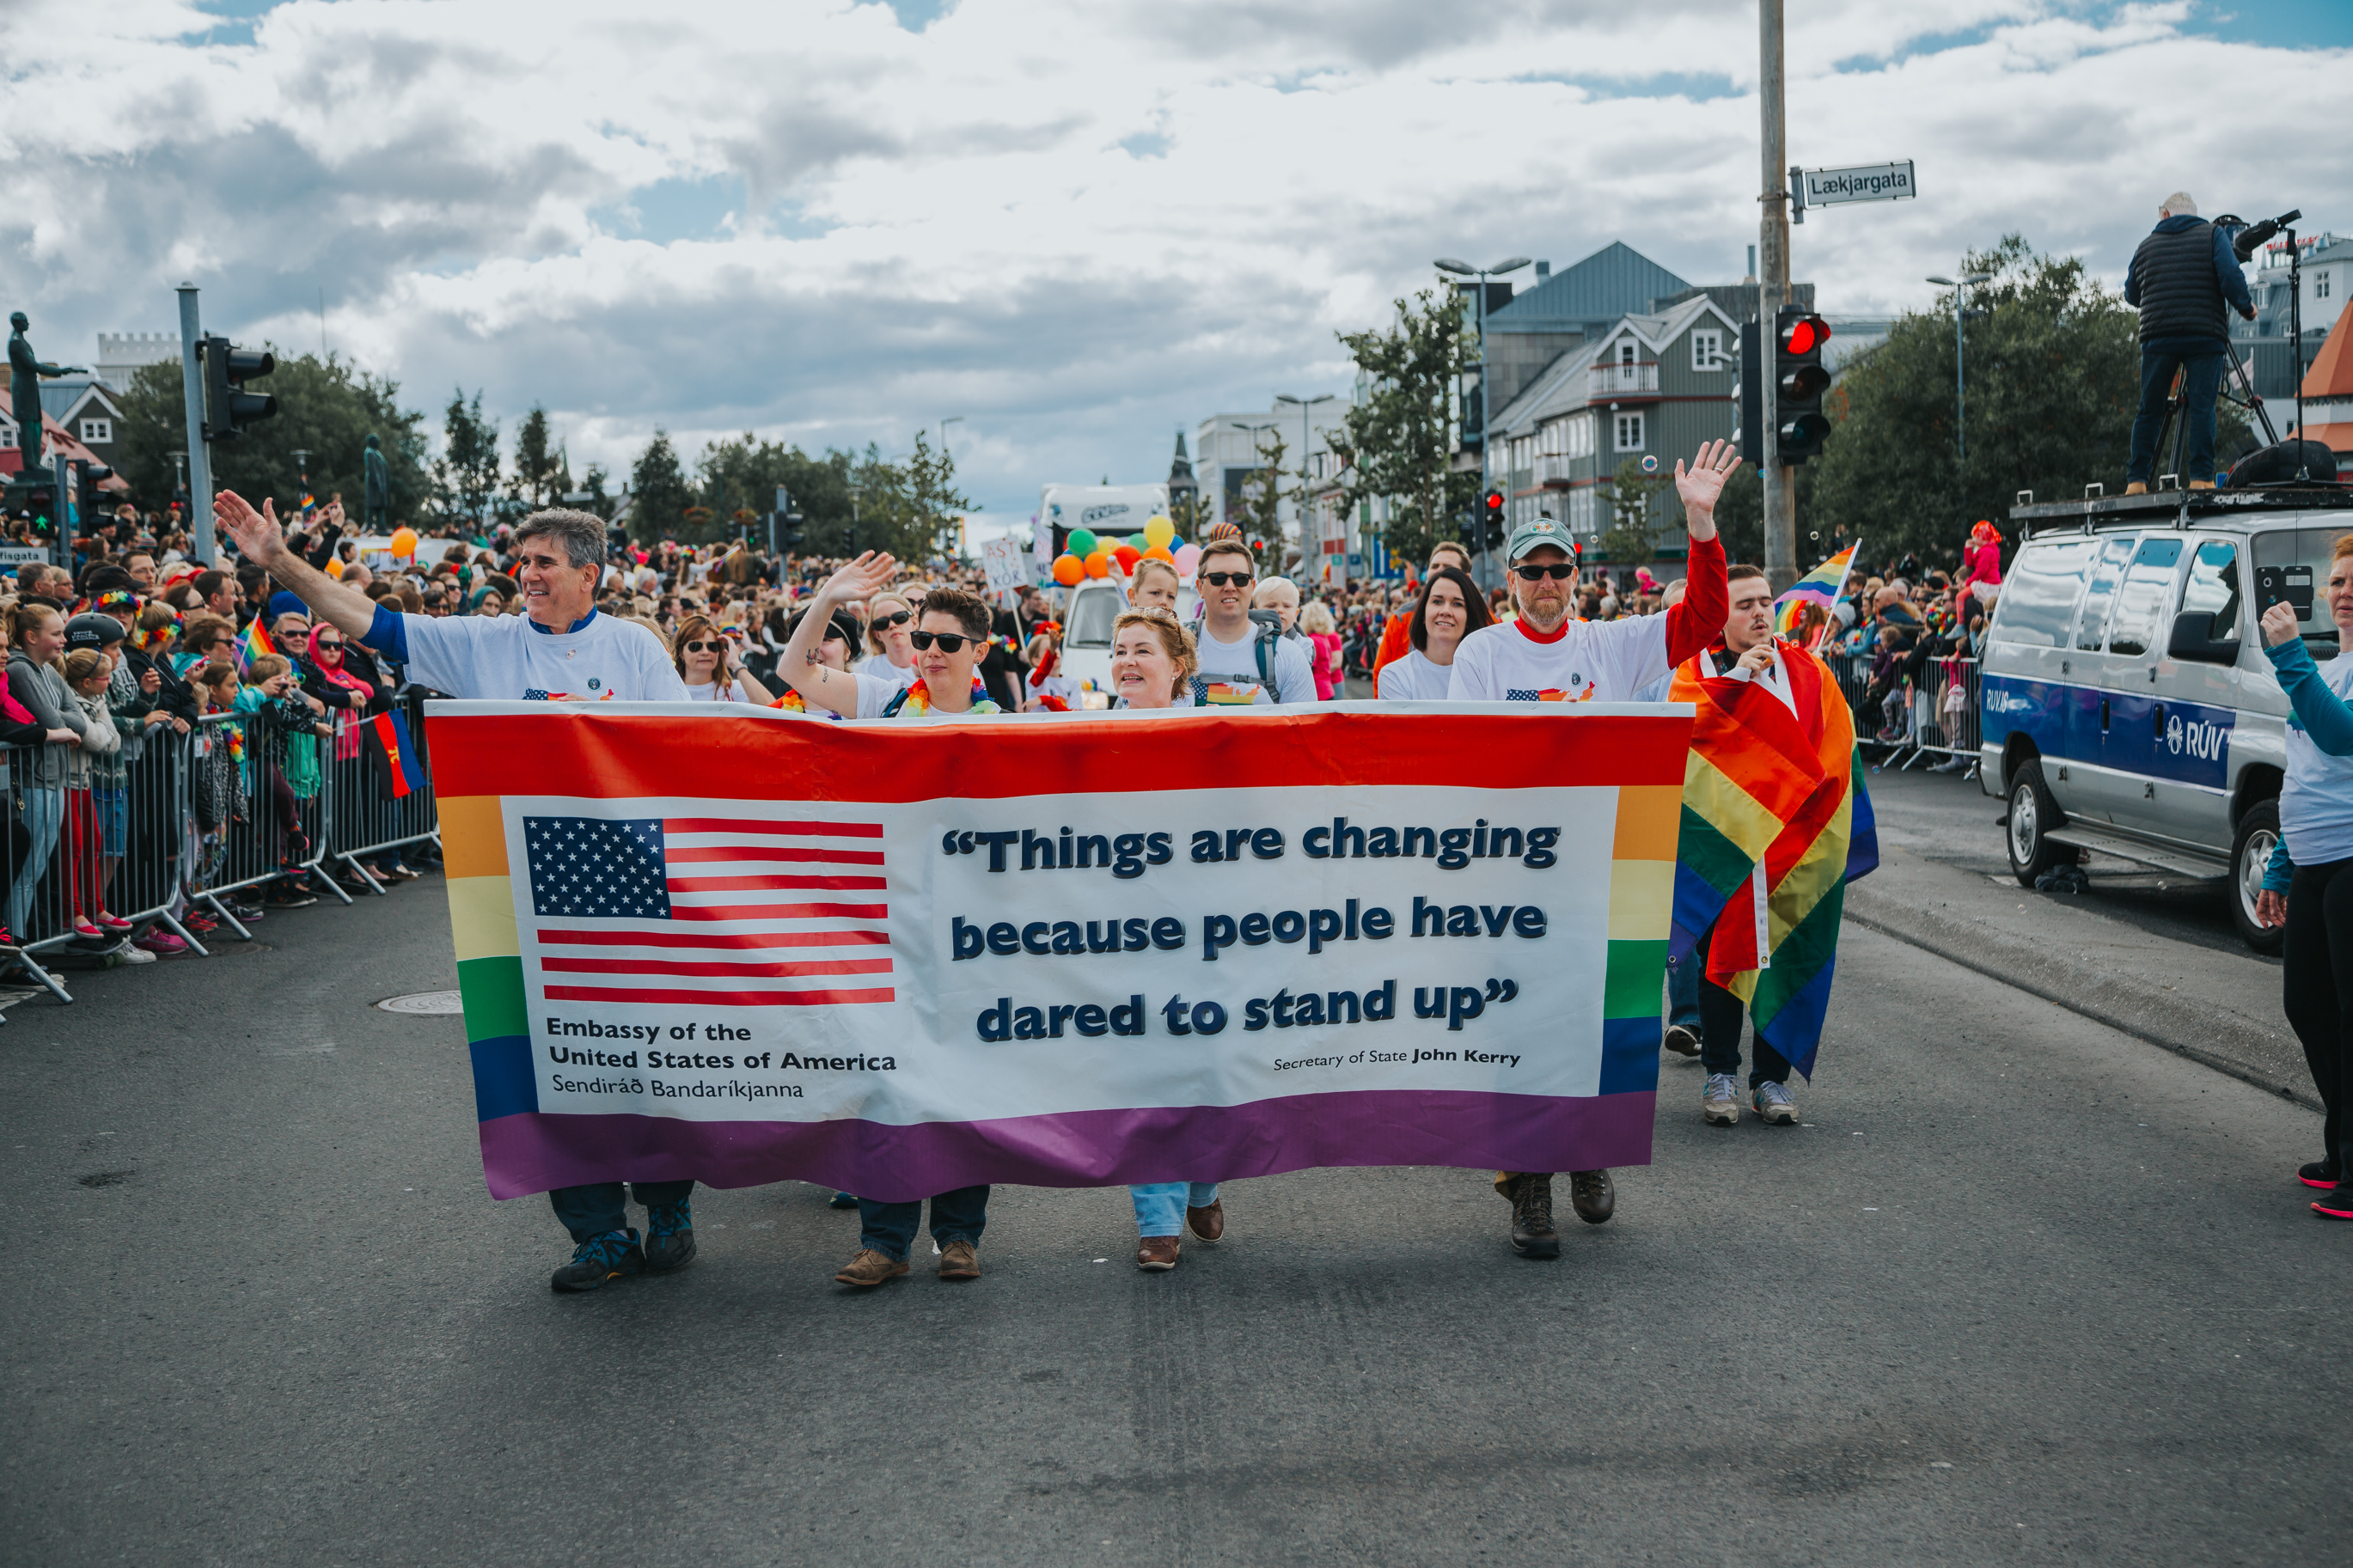 The United States and Iceland: LGBTI Rights as a Common Value